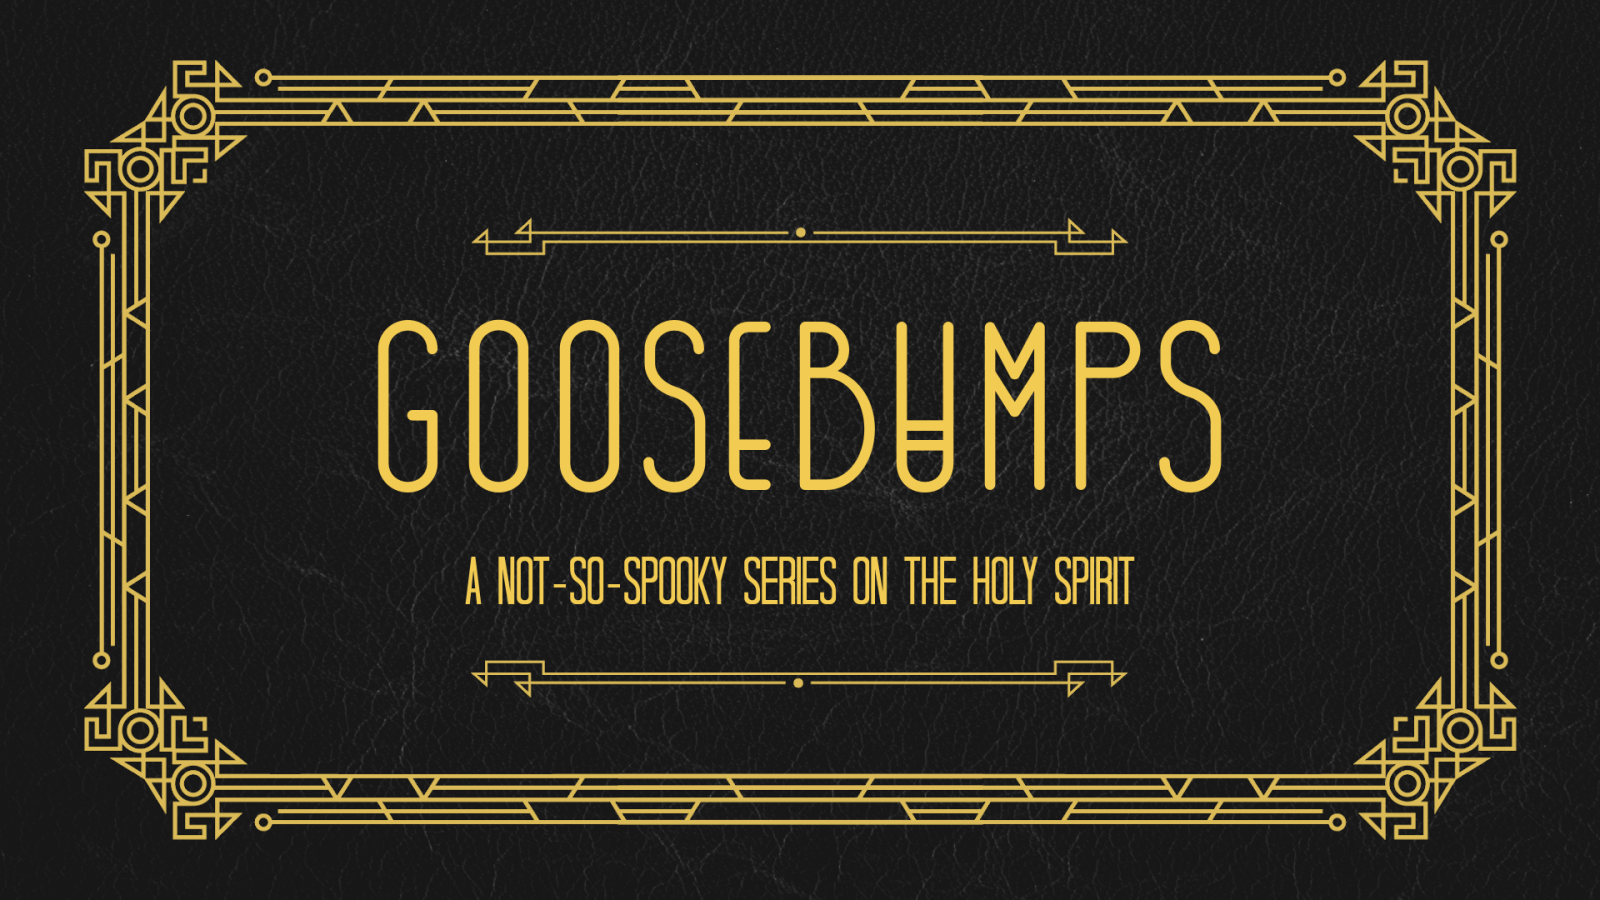 Goosebumps - A Not-So-Spooky Series on the Holy Spirit